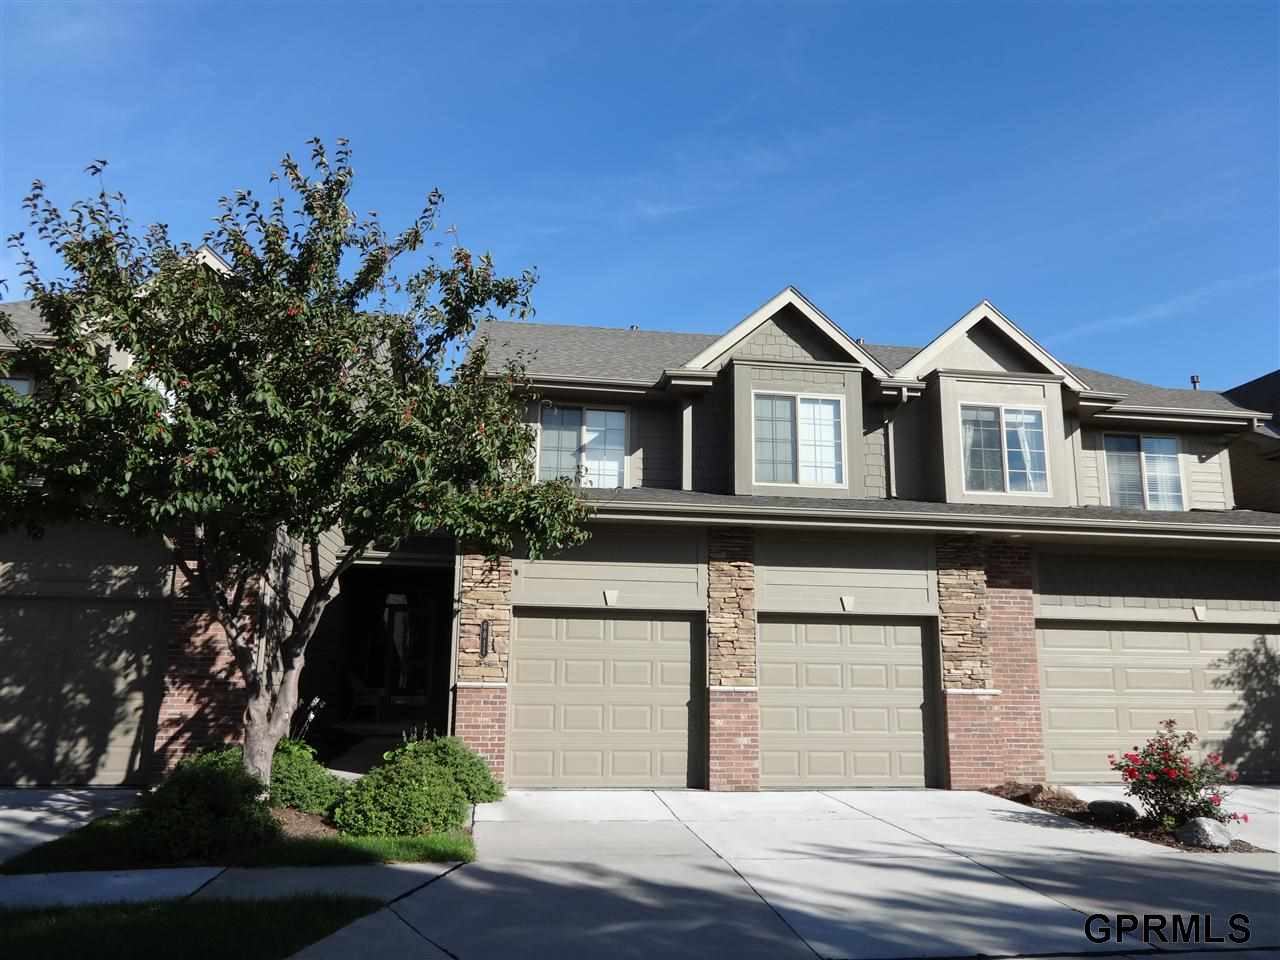 Rental Homes for Rent, ListingId:30734923, location: 6811 N 122nd Court Omaha 68142